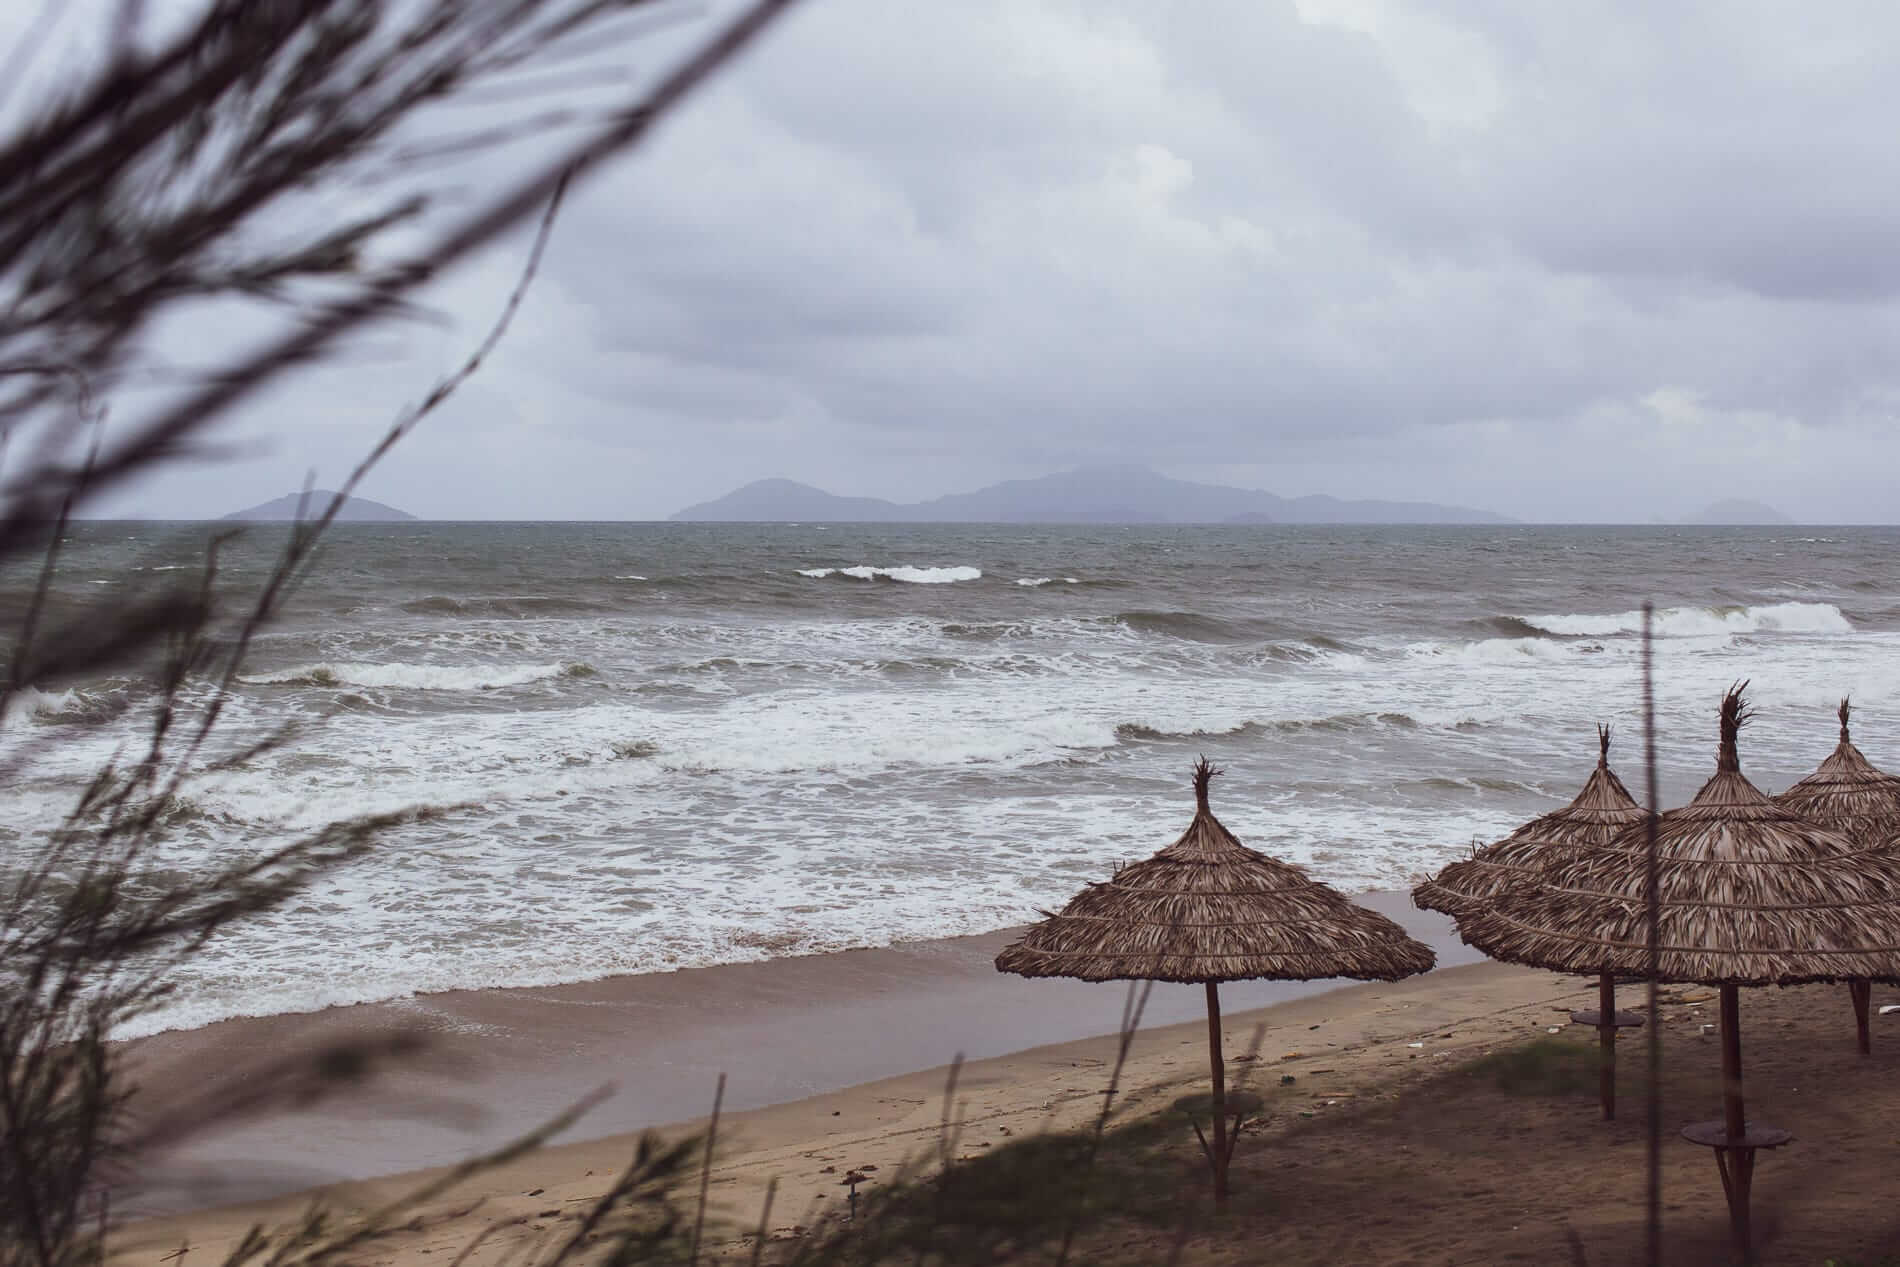 typhoon season on the beach of Hoi An